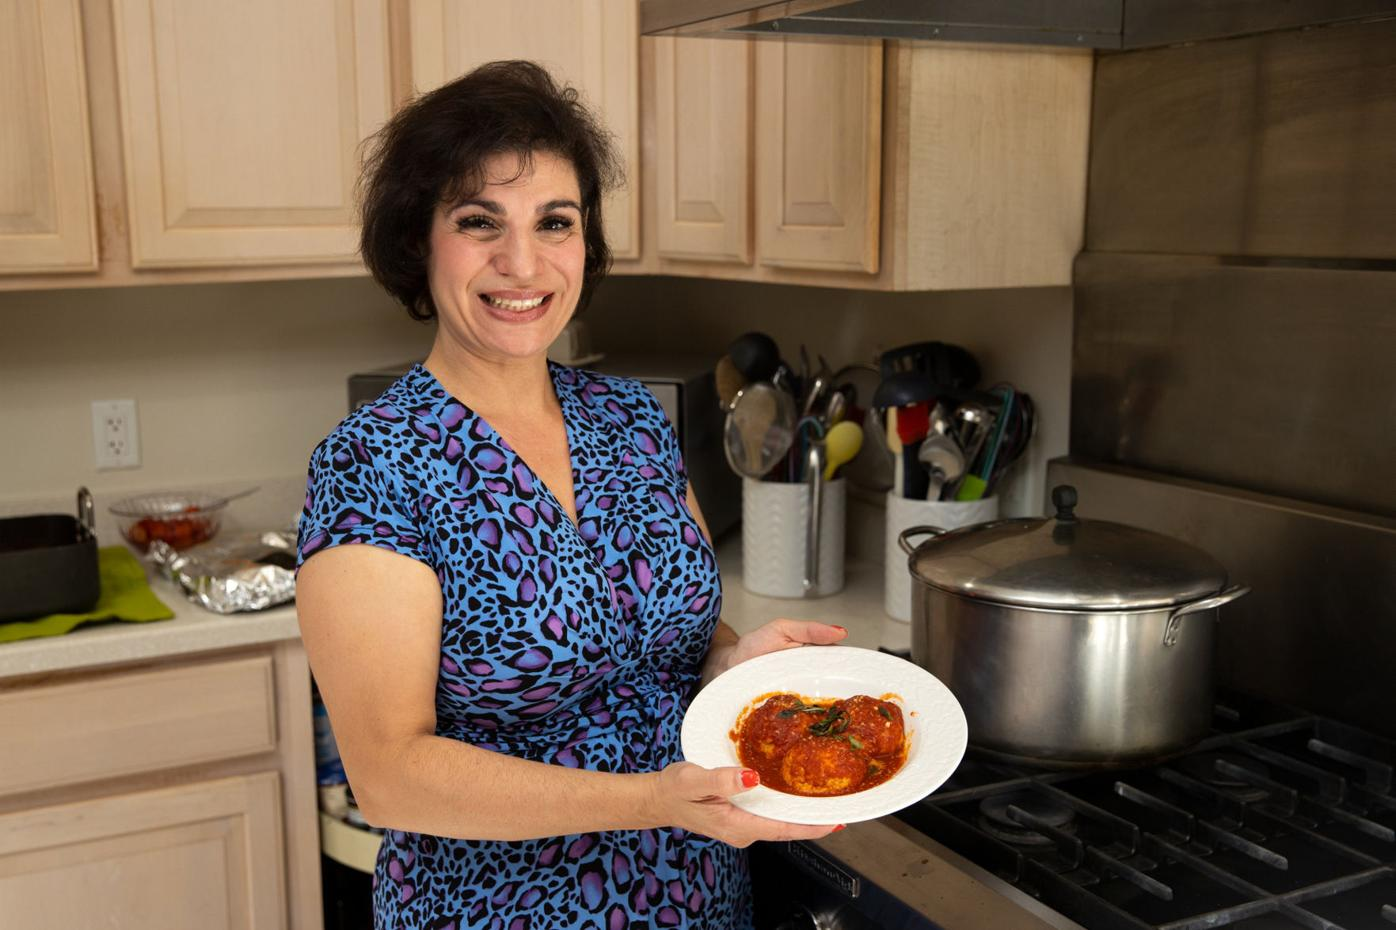 Carbondale woman delights in making Italian Ricotta Cheeseballs and more